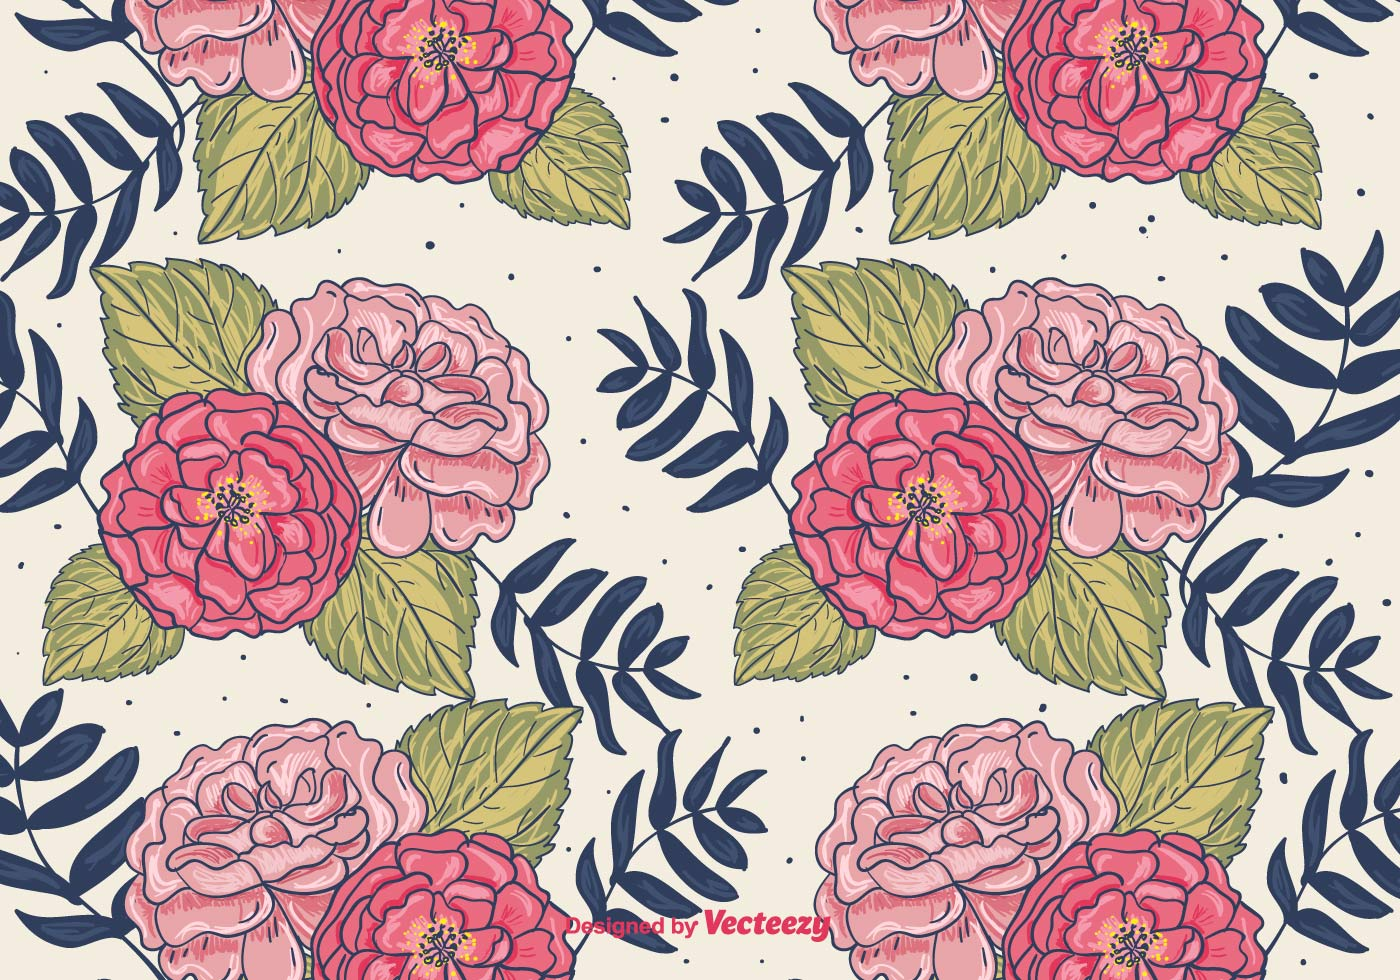 Hand drawn floral background download free vector art stock graphics images - Floral background ...